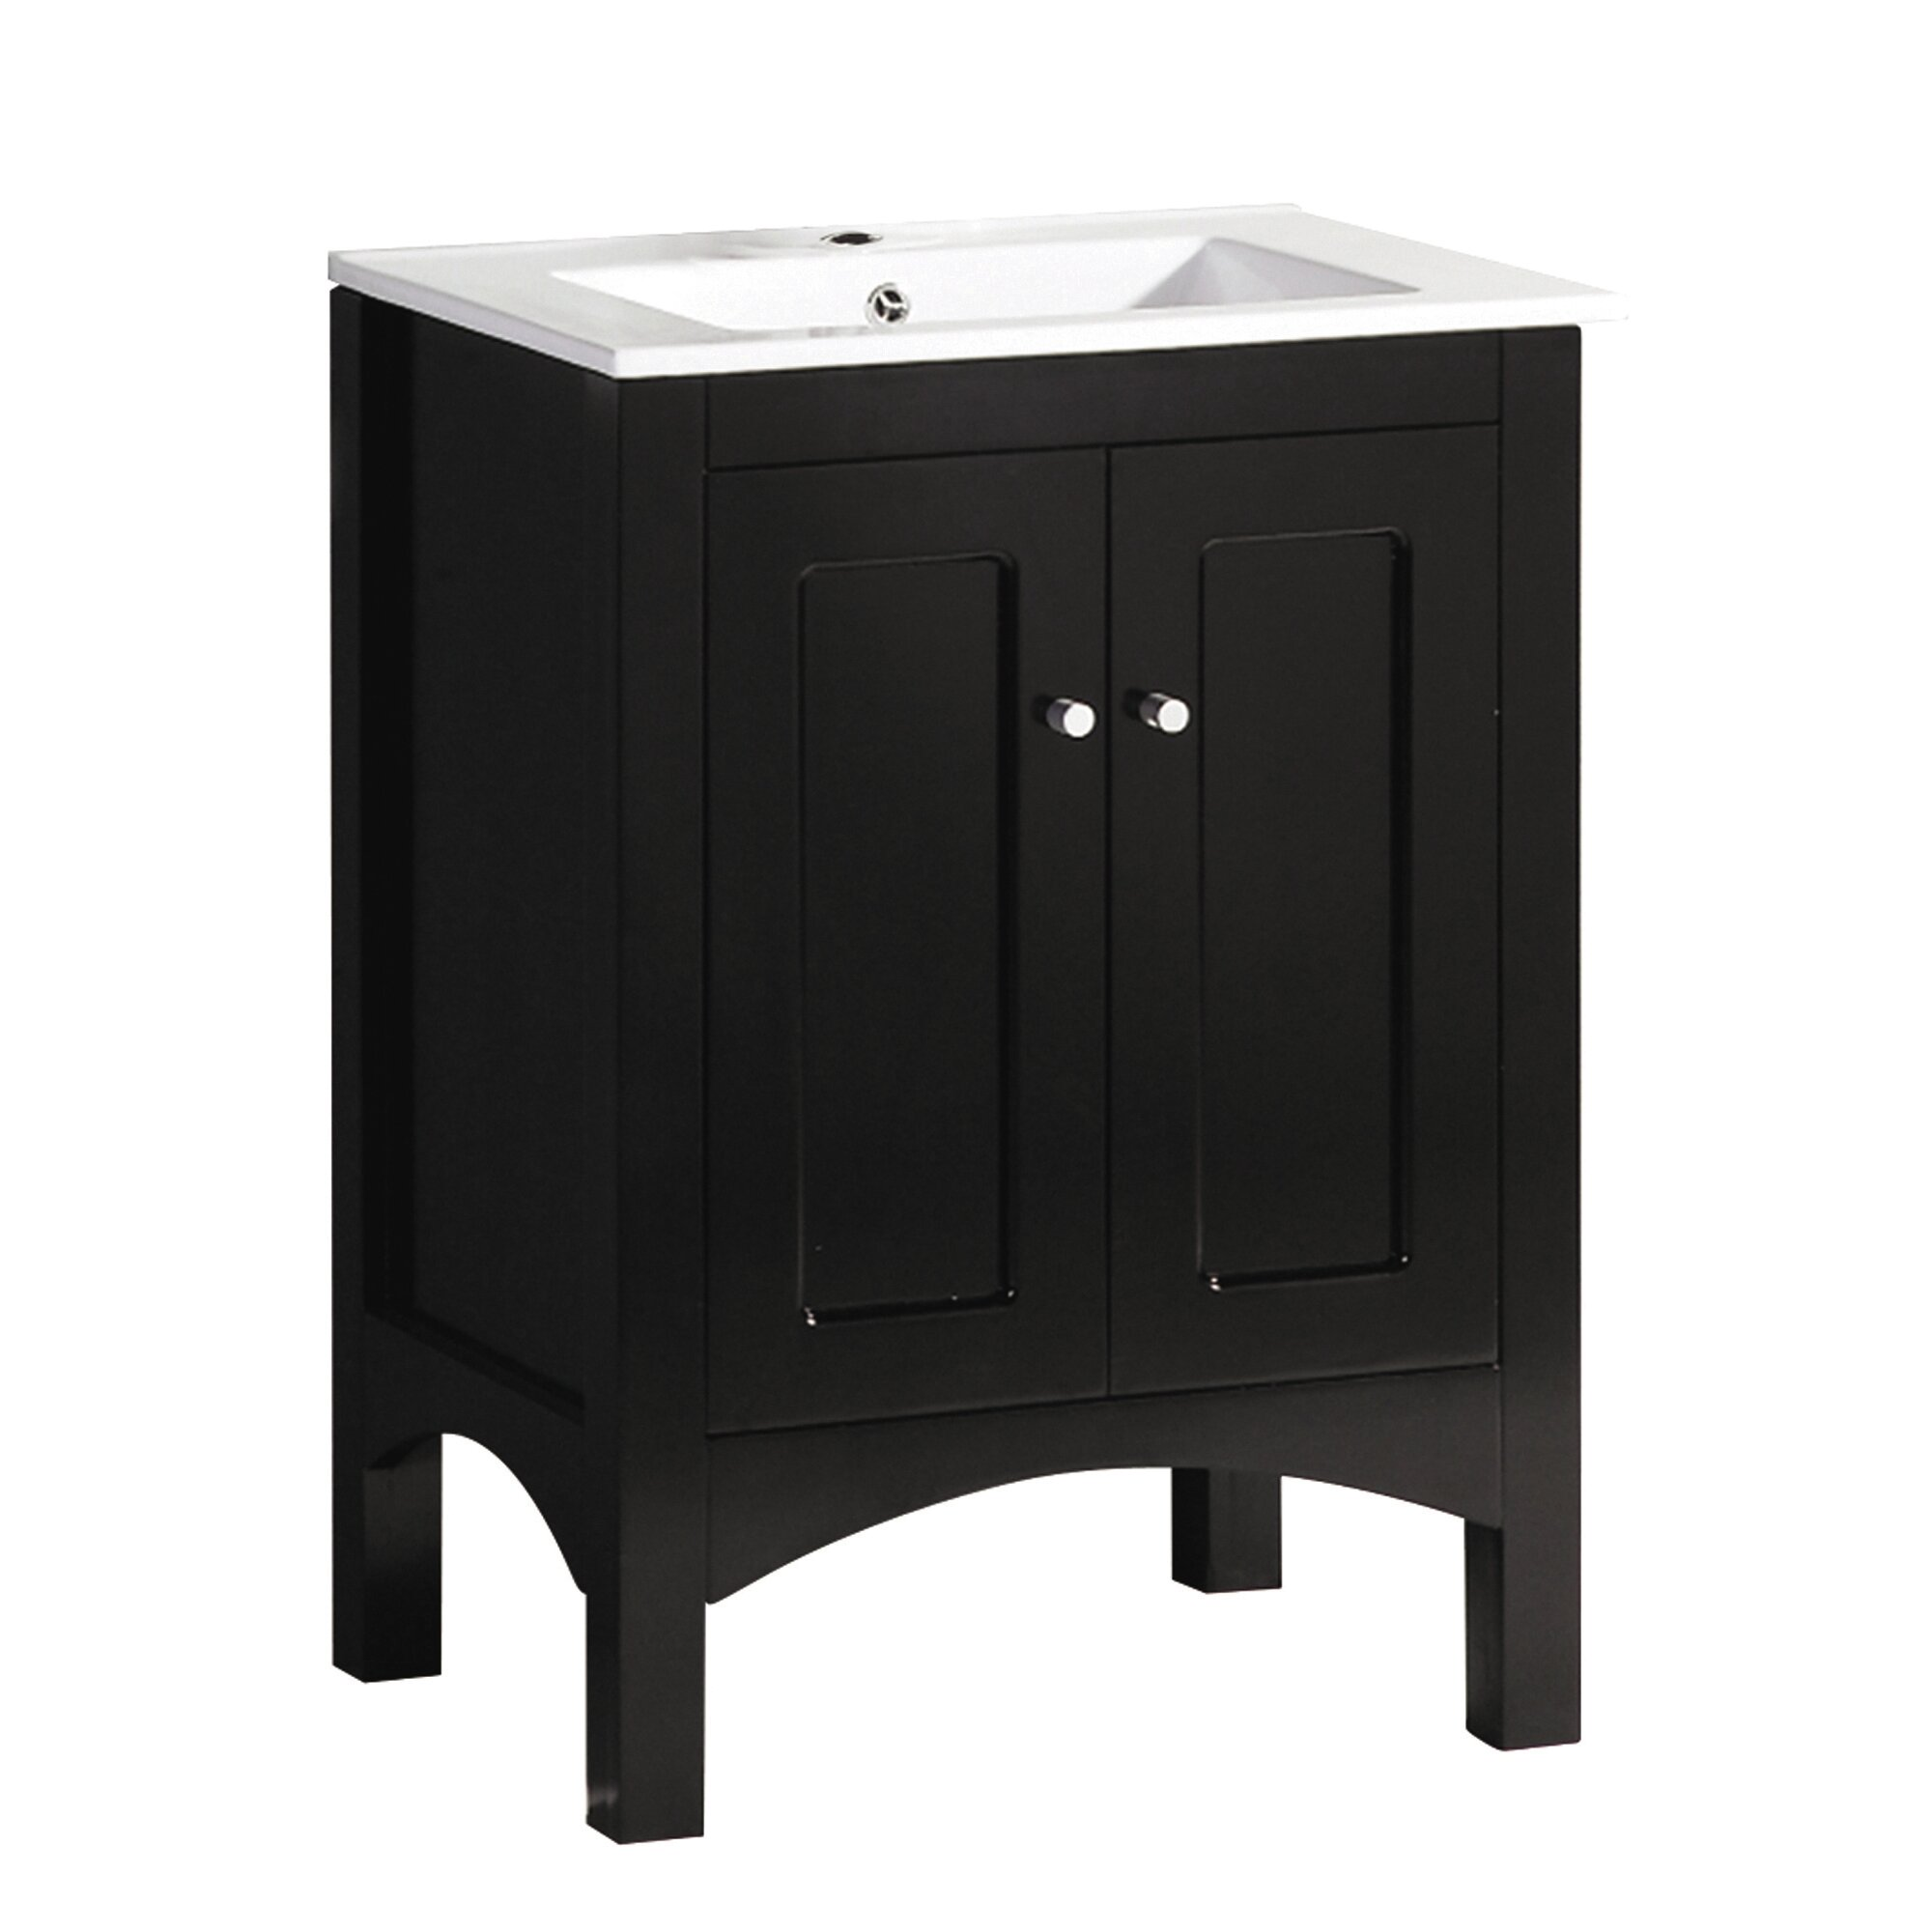 Yosemite Home Decor 24 Single Bathroom Vanity Set